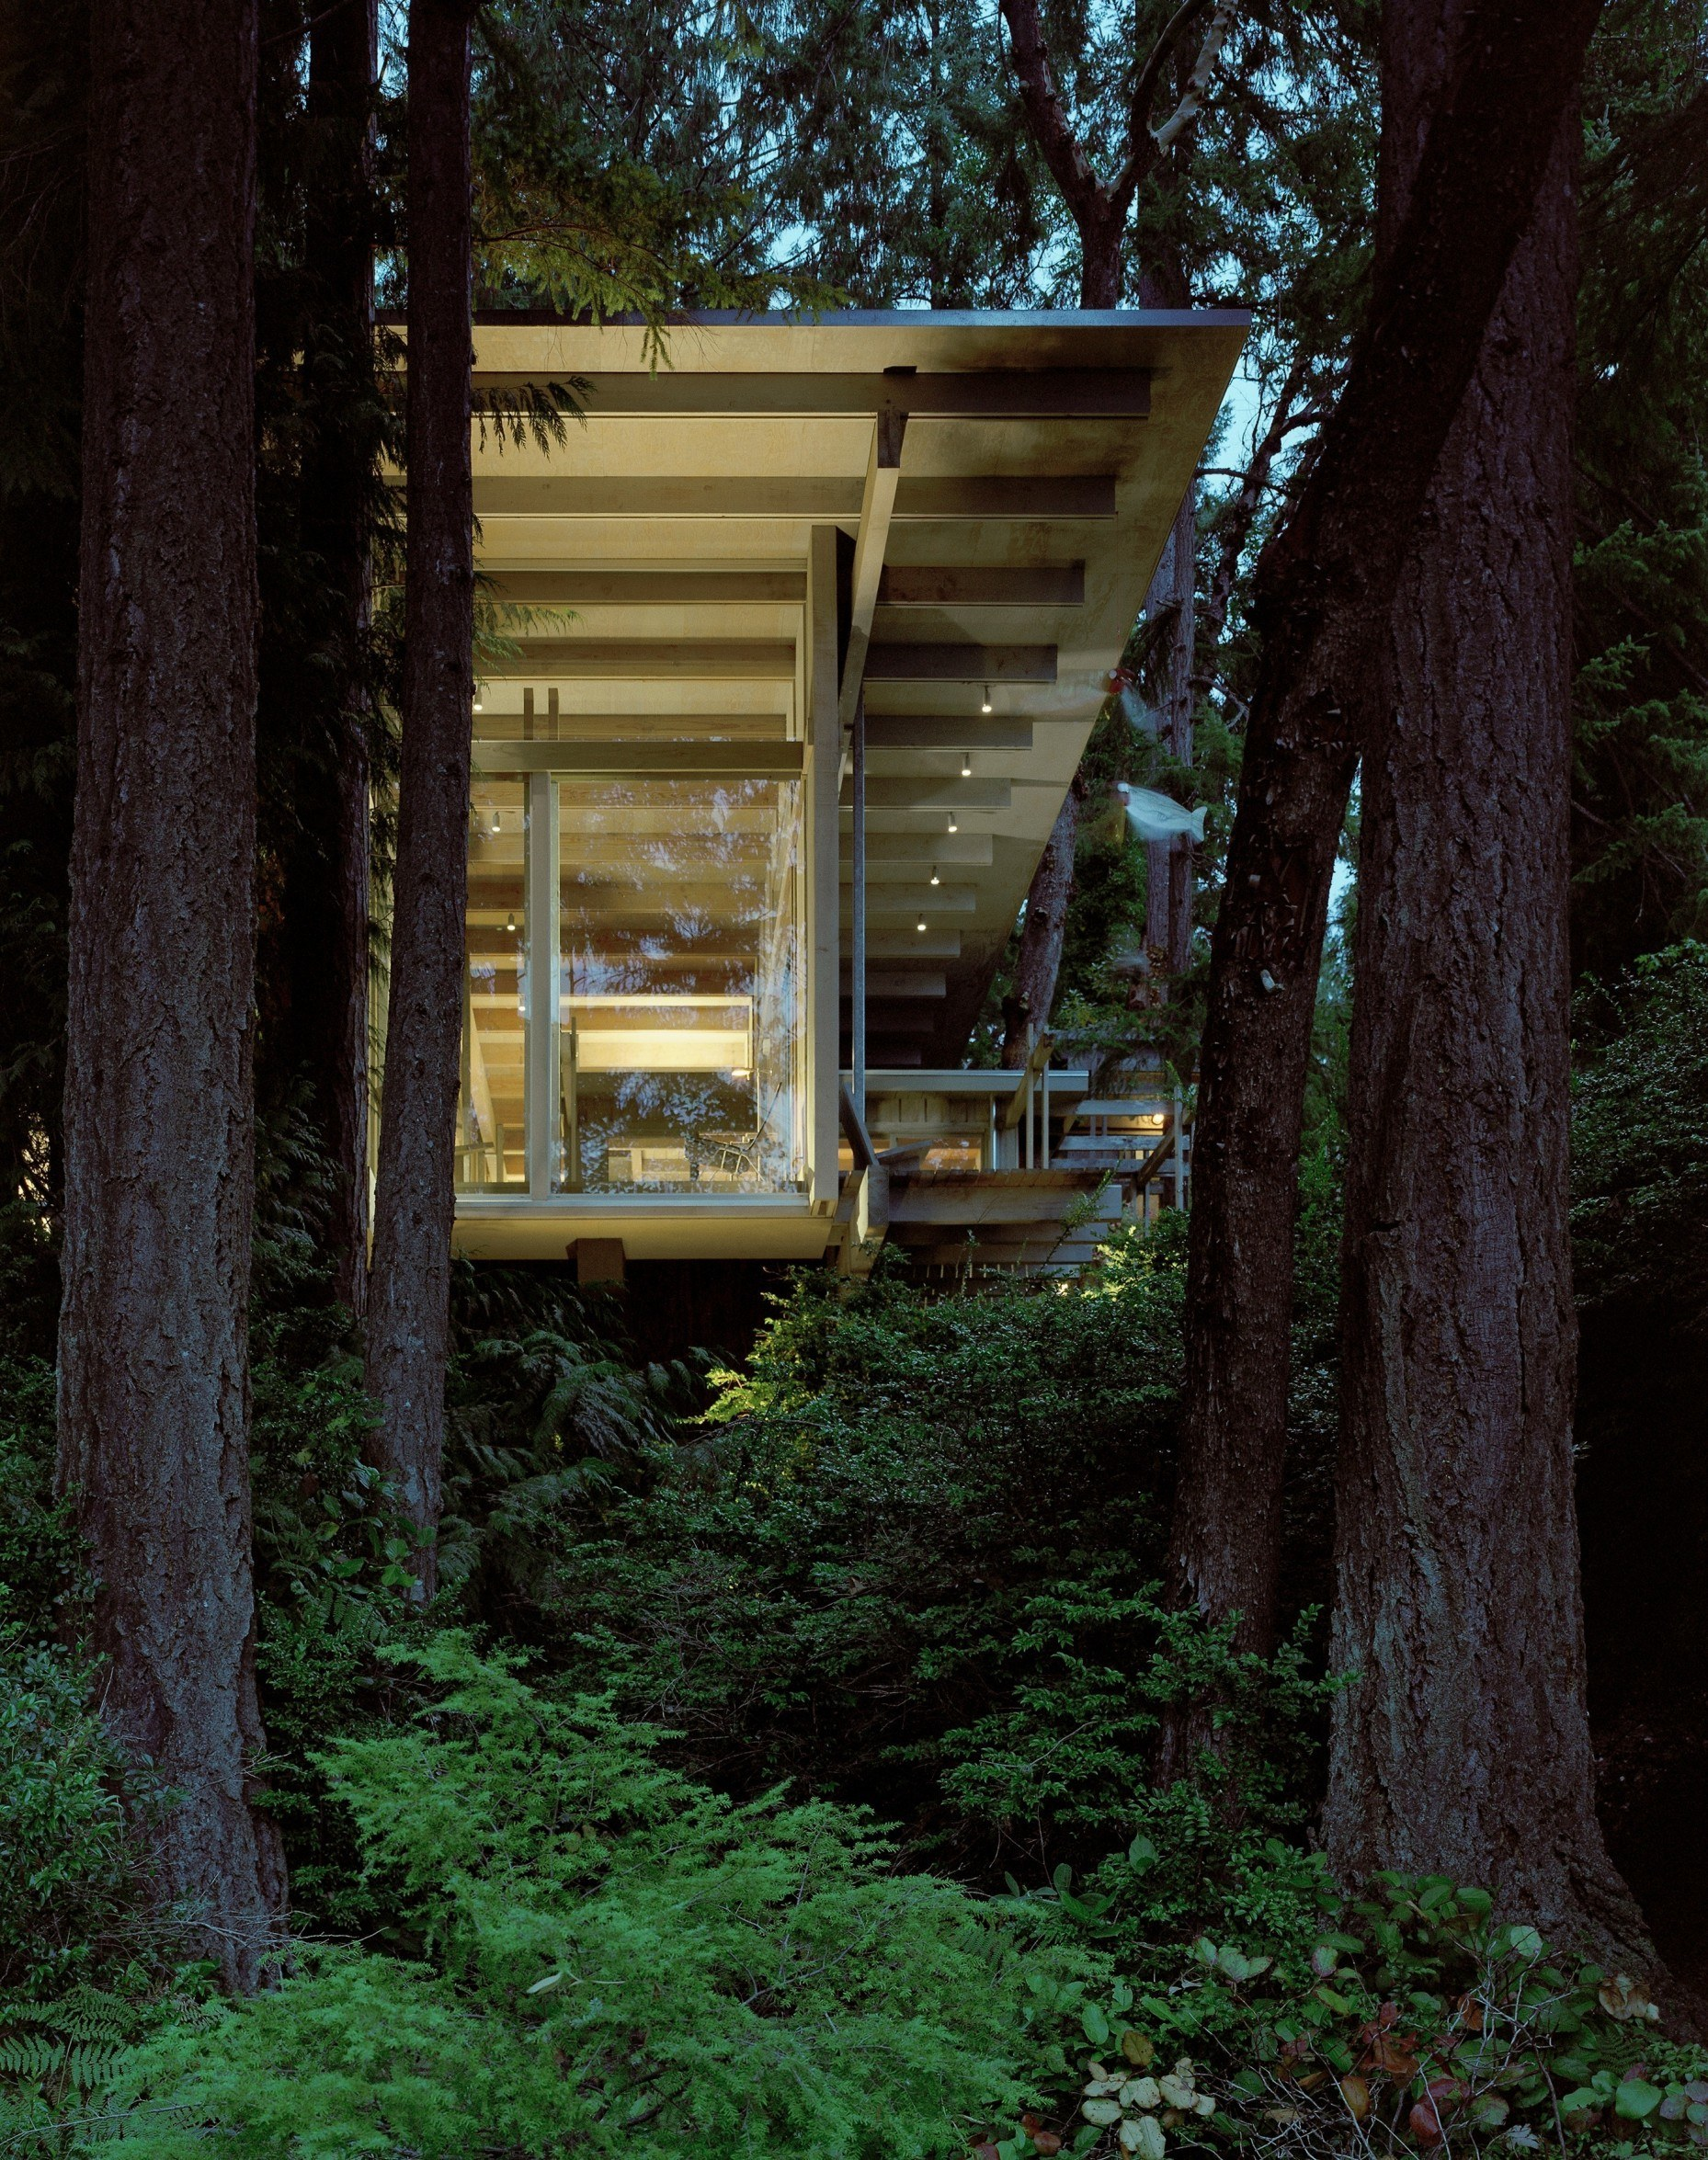 Home of a Starchitect: Cabin at Longbranch by Olson Kundig